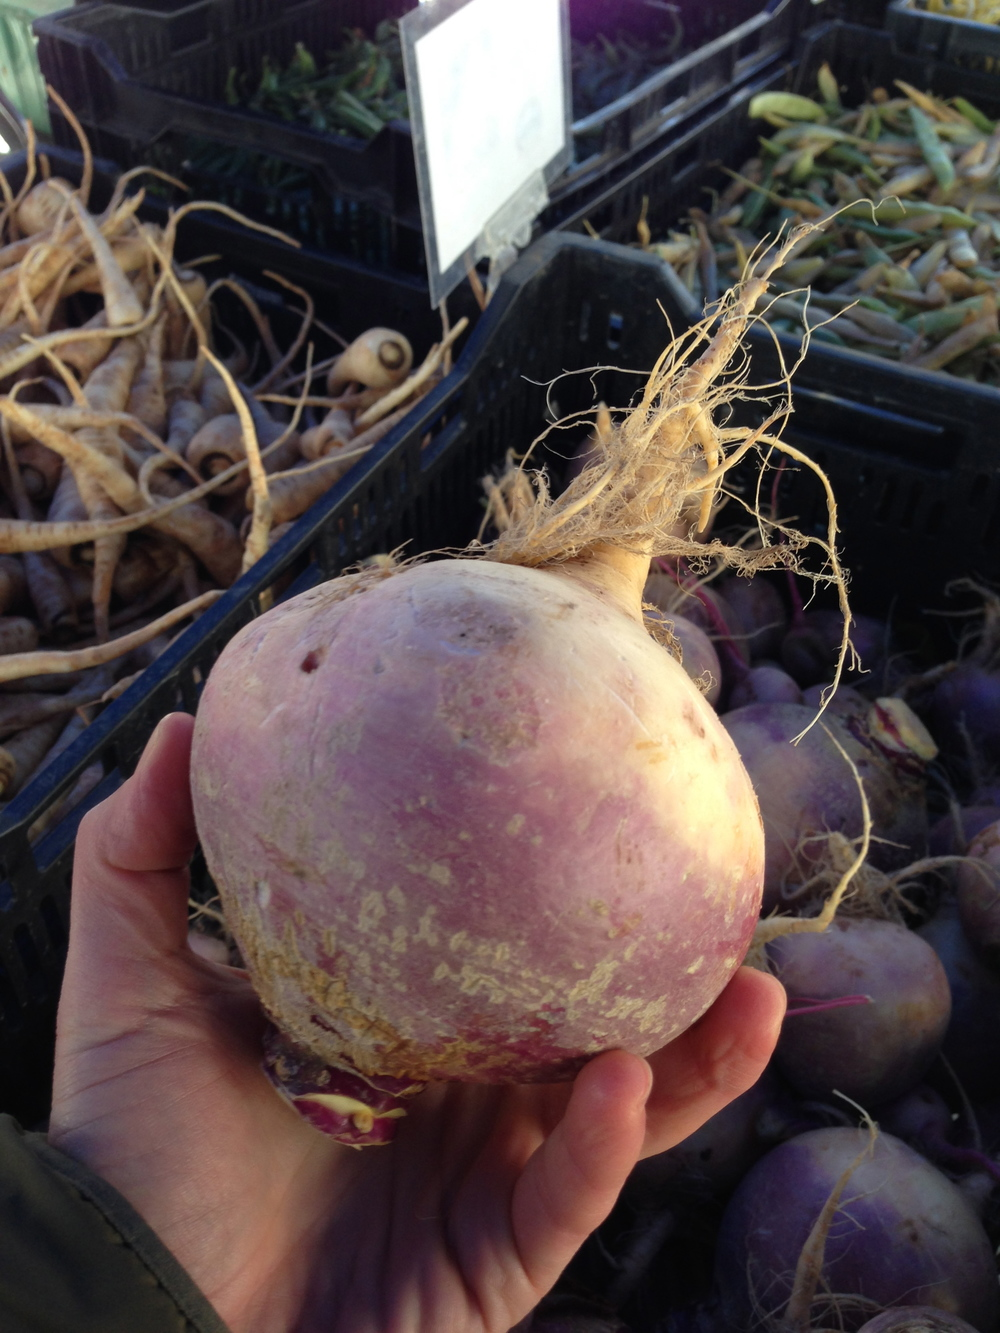 Buying some rutabaga at the Greenmarket in Brooklyn. Did you know it is one of the highest anti-fungal foods?